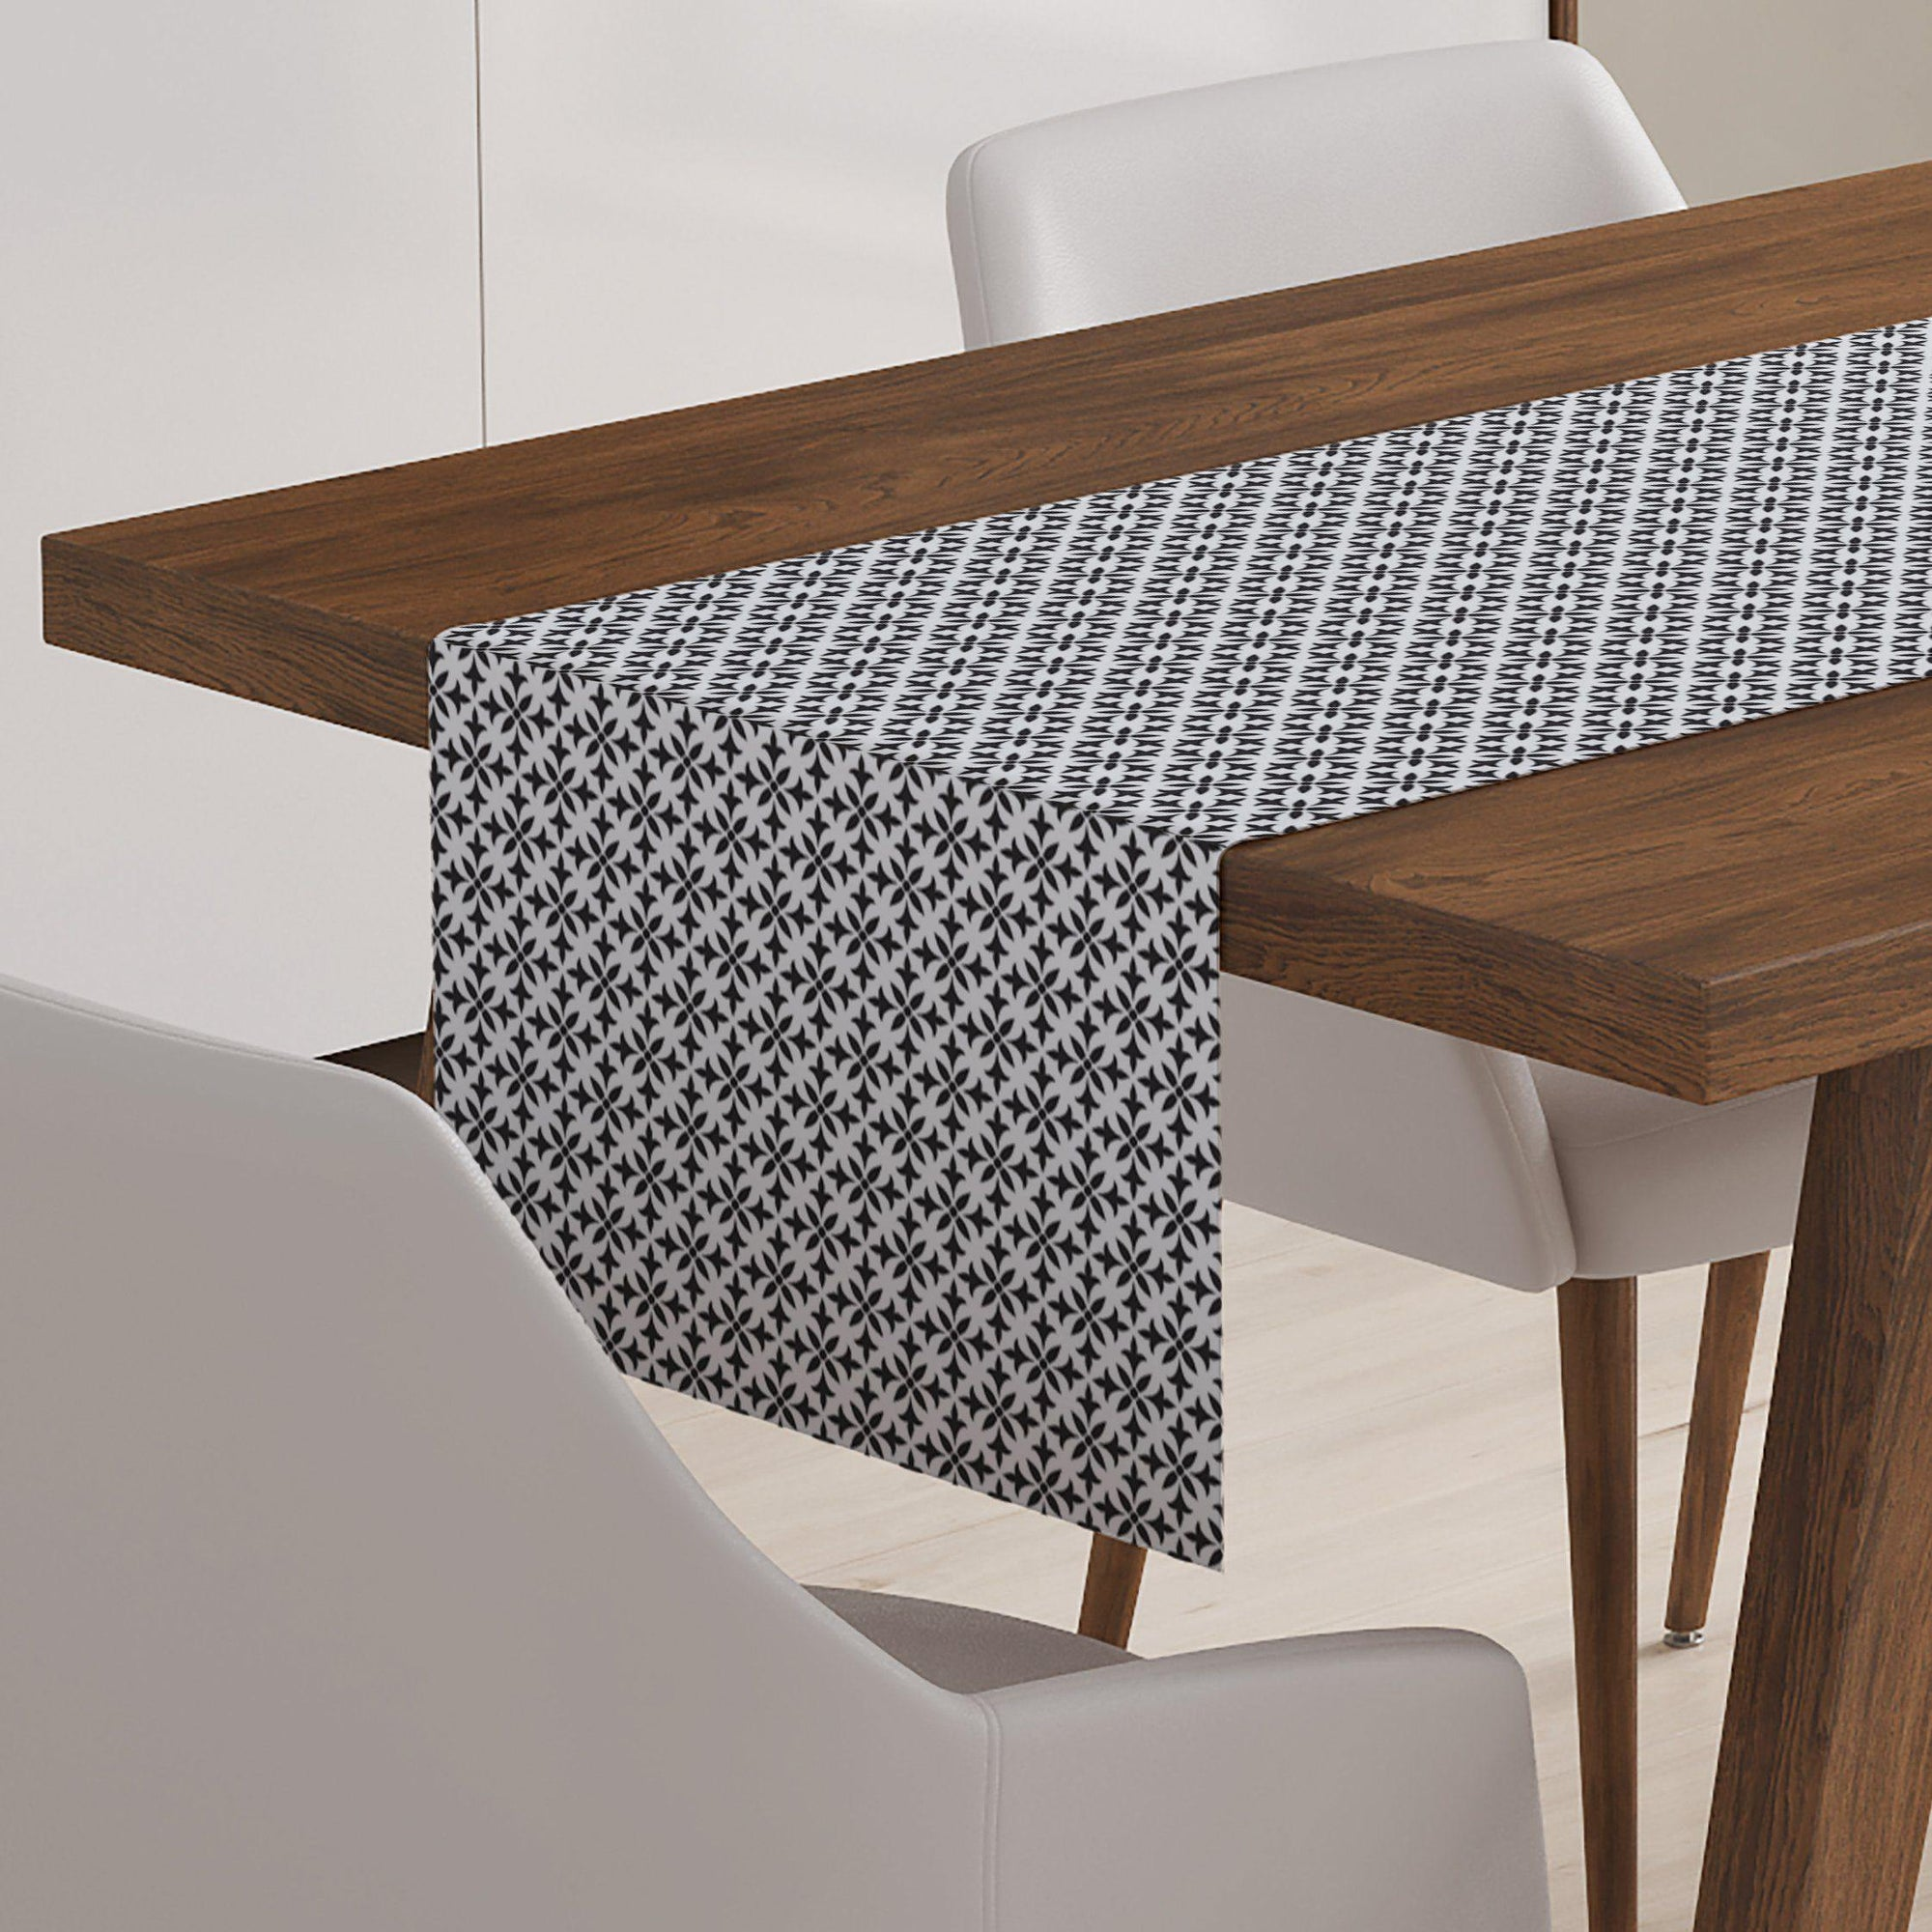 Black and White Table Runner - Table Runners - W.FRANCIS